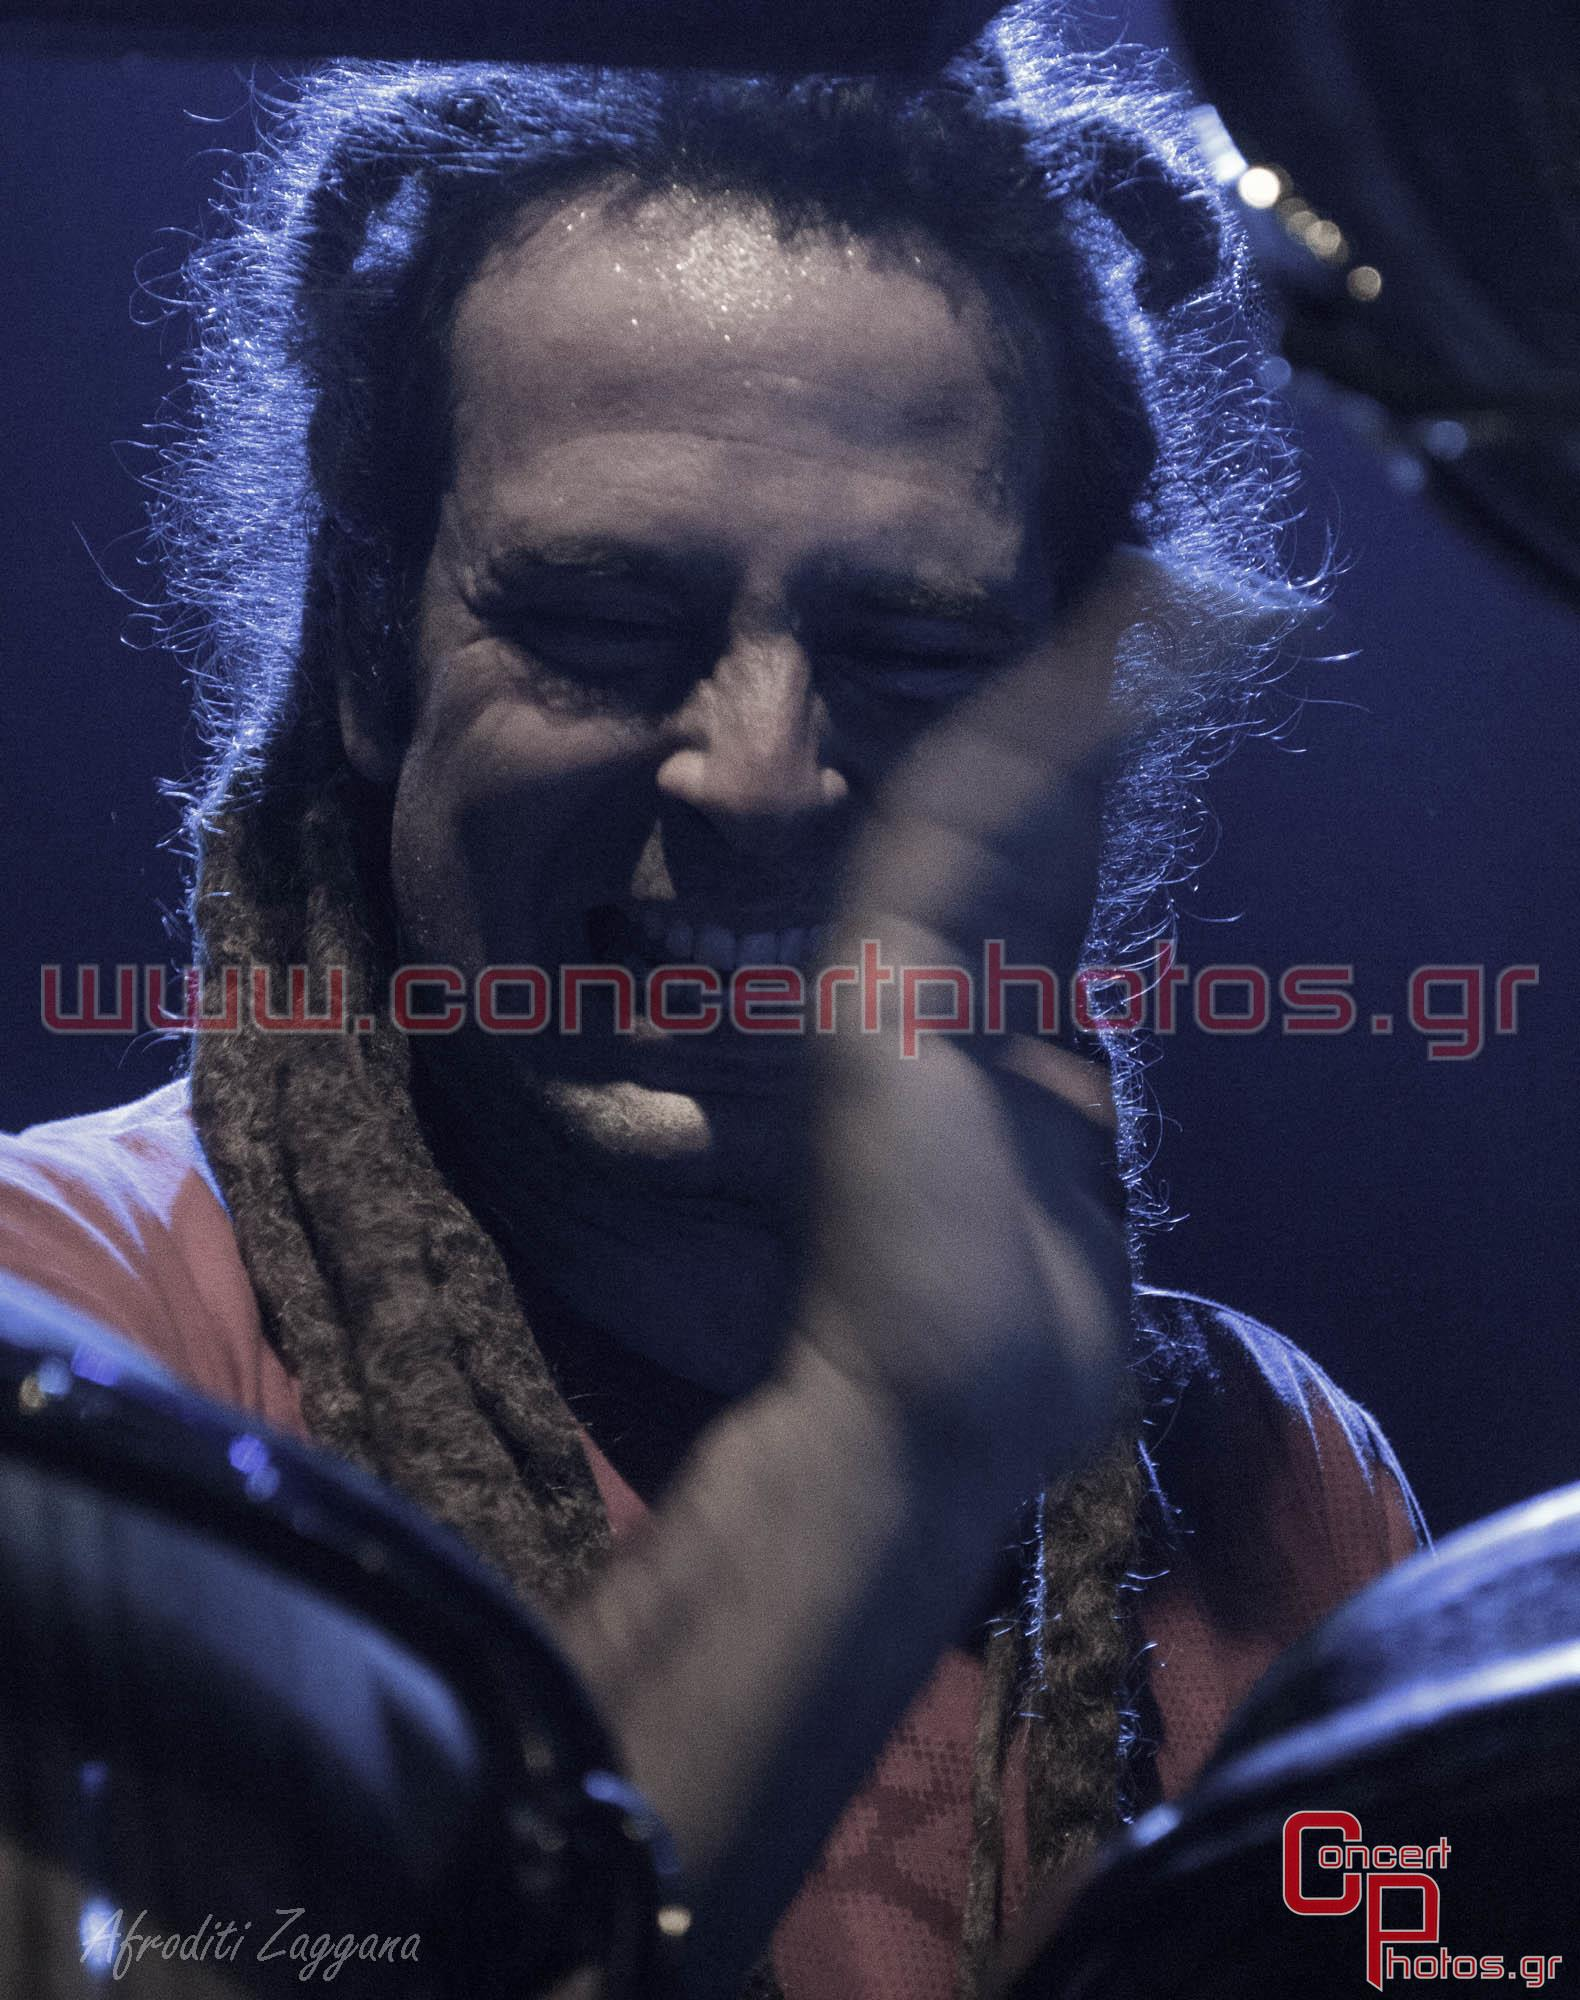 Locomondo- photographer:  - ConcertPhotos-2